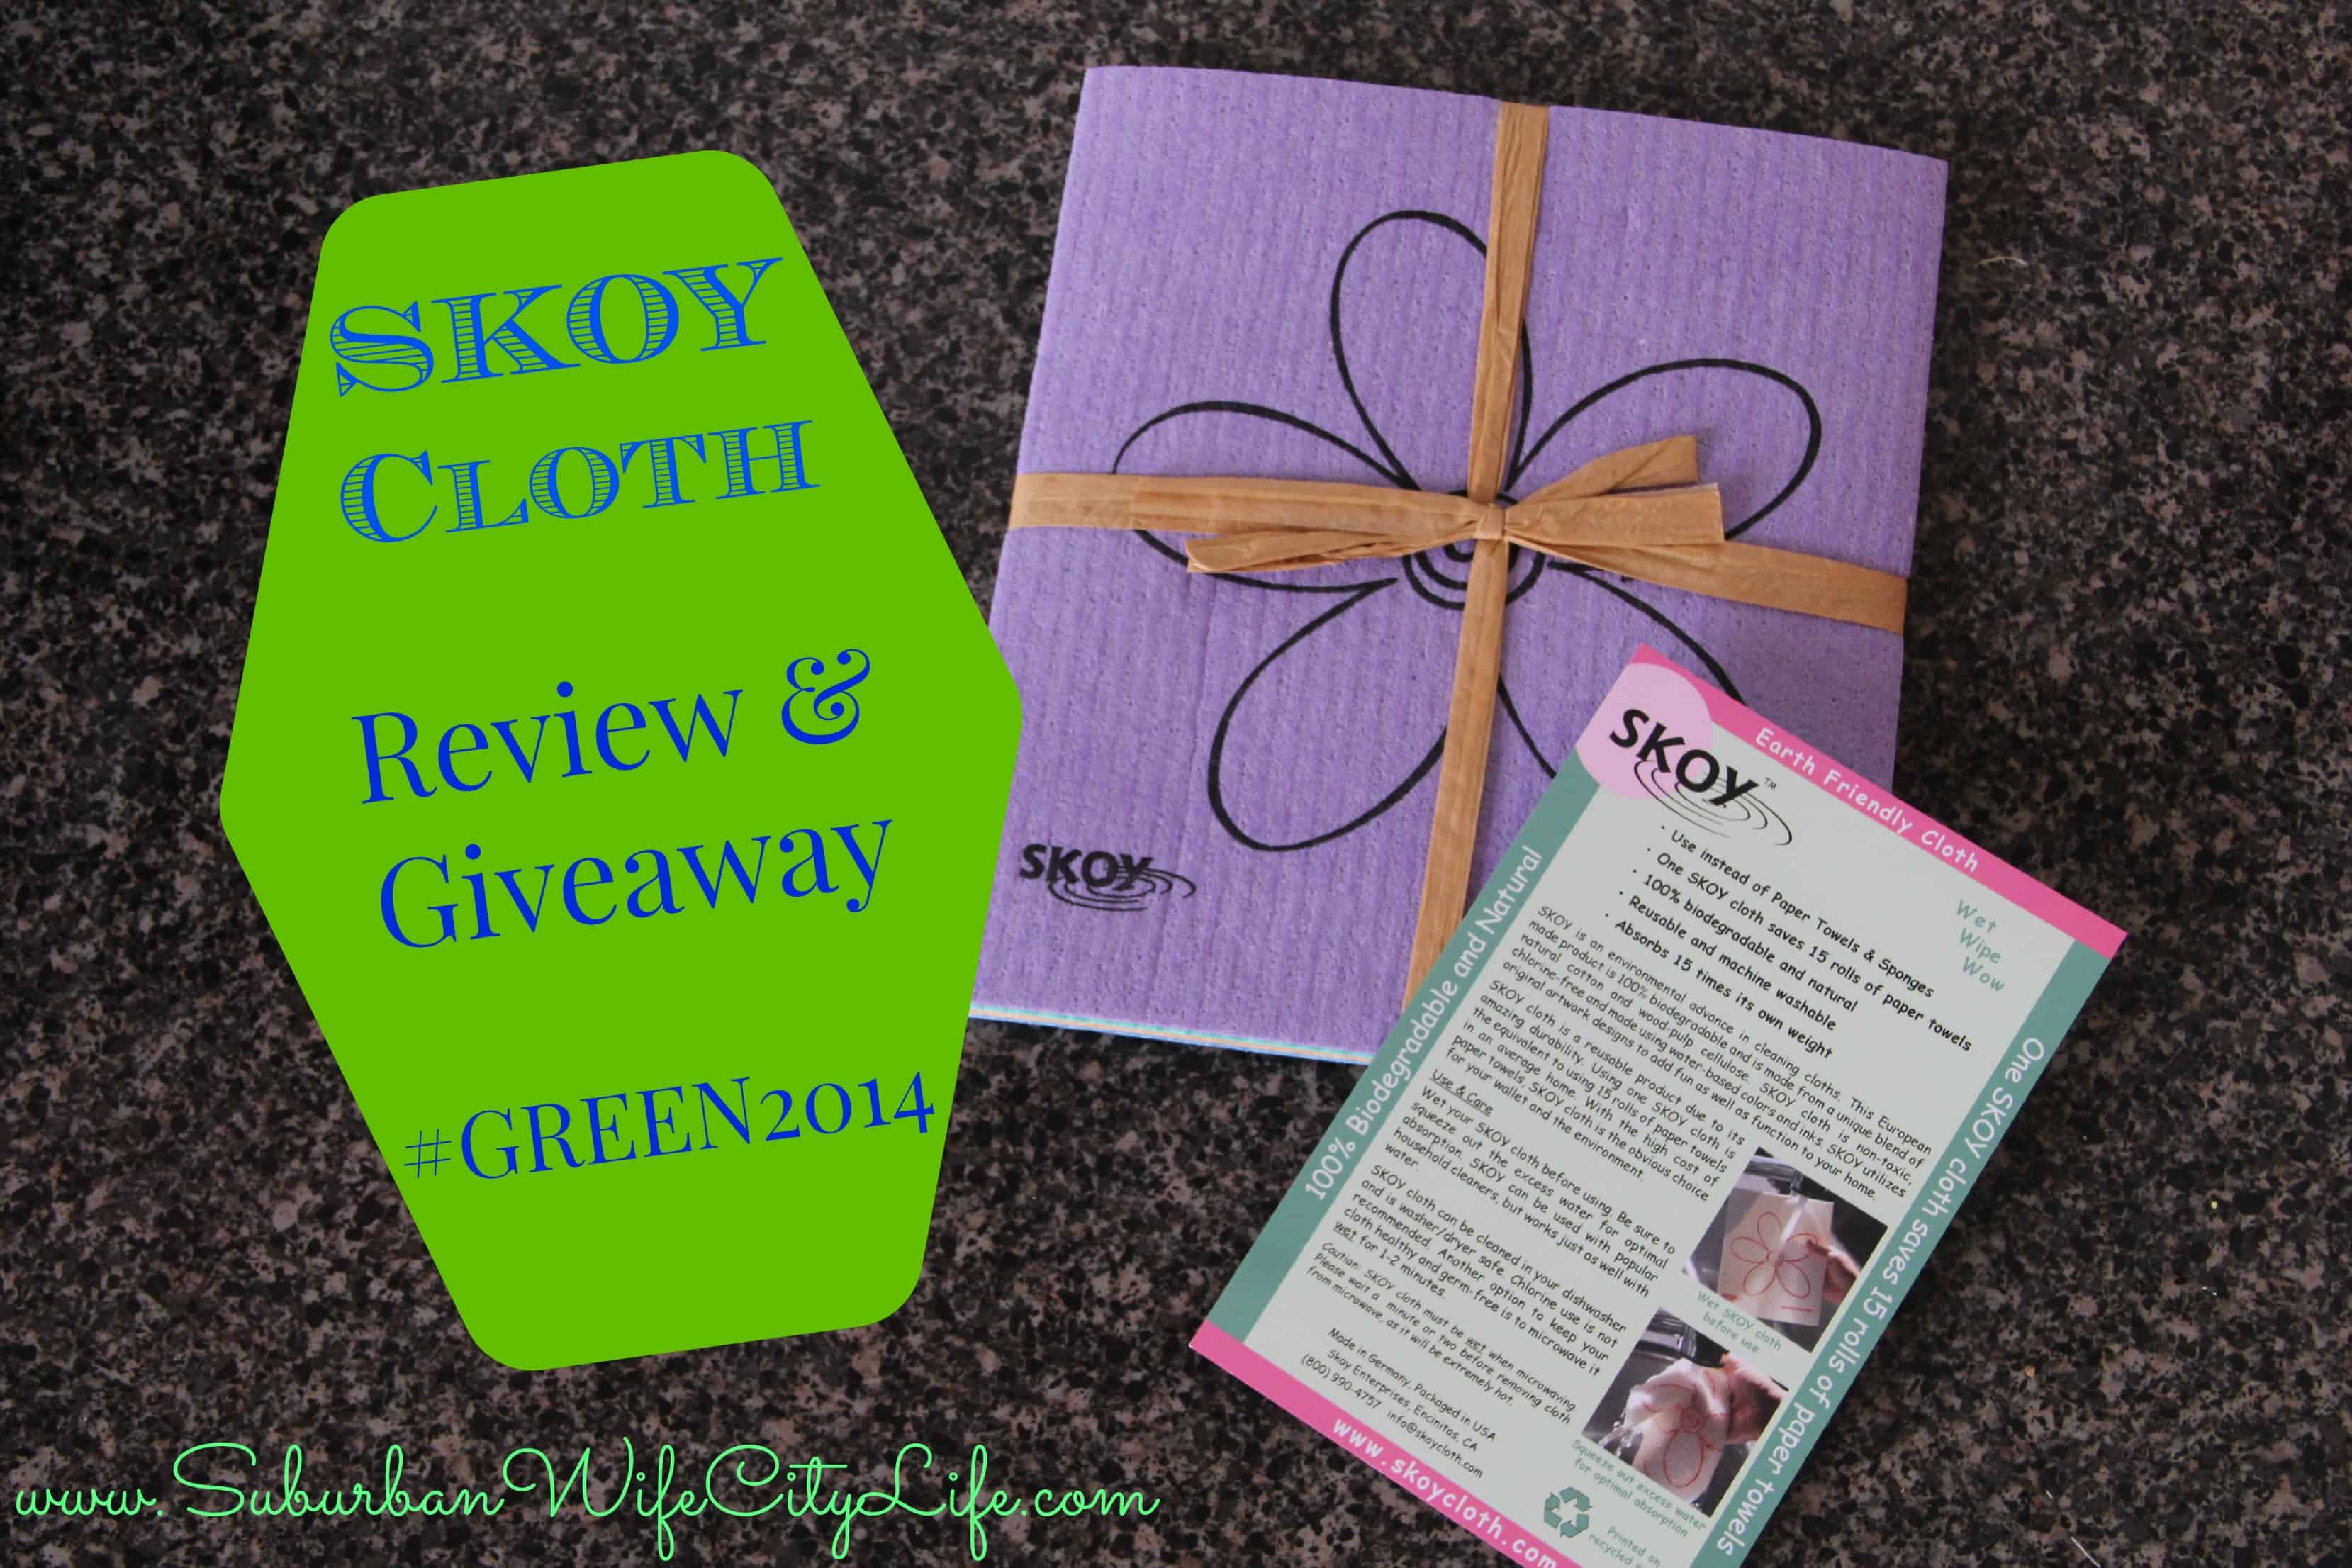 SKOY Cloth Review & Giveaway